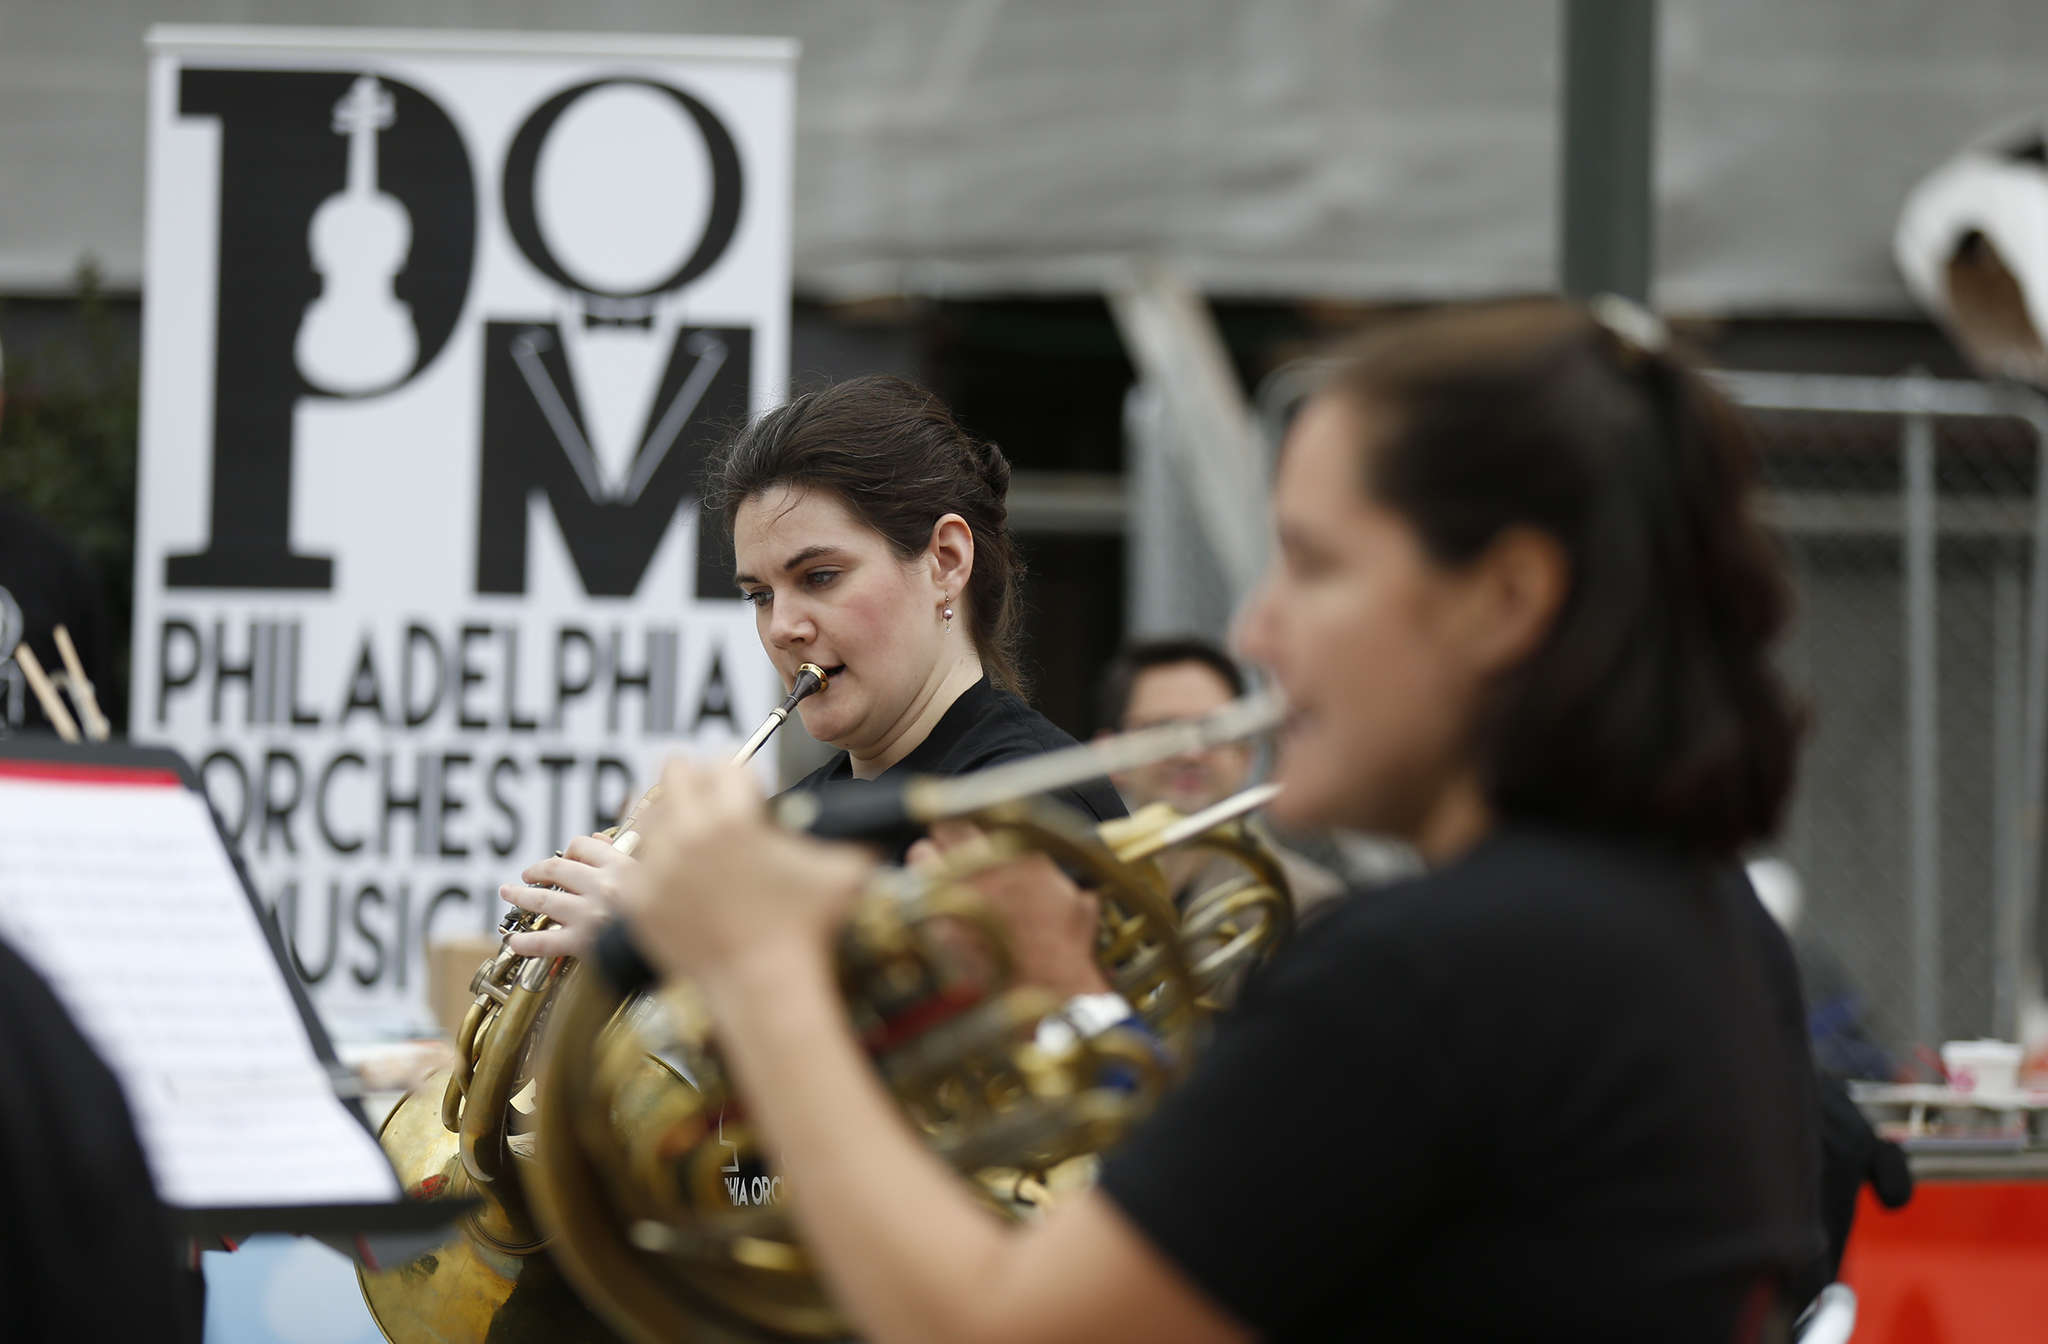 Bryn Coveney, a student at the Curtis Institute of Music, plays with members of the Philadelphia Orchestra outside 30th Street Station, one of several concerts by orchestra musicians throughout the Philadelphia area.